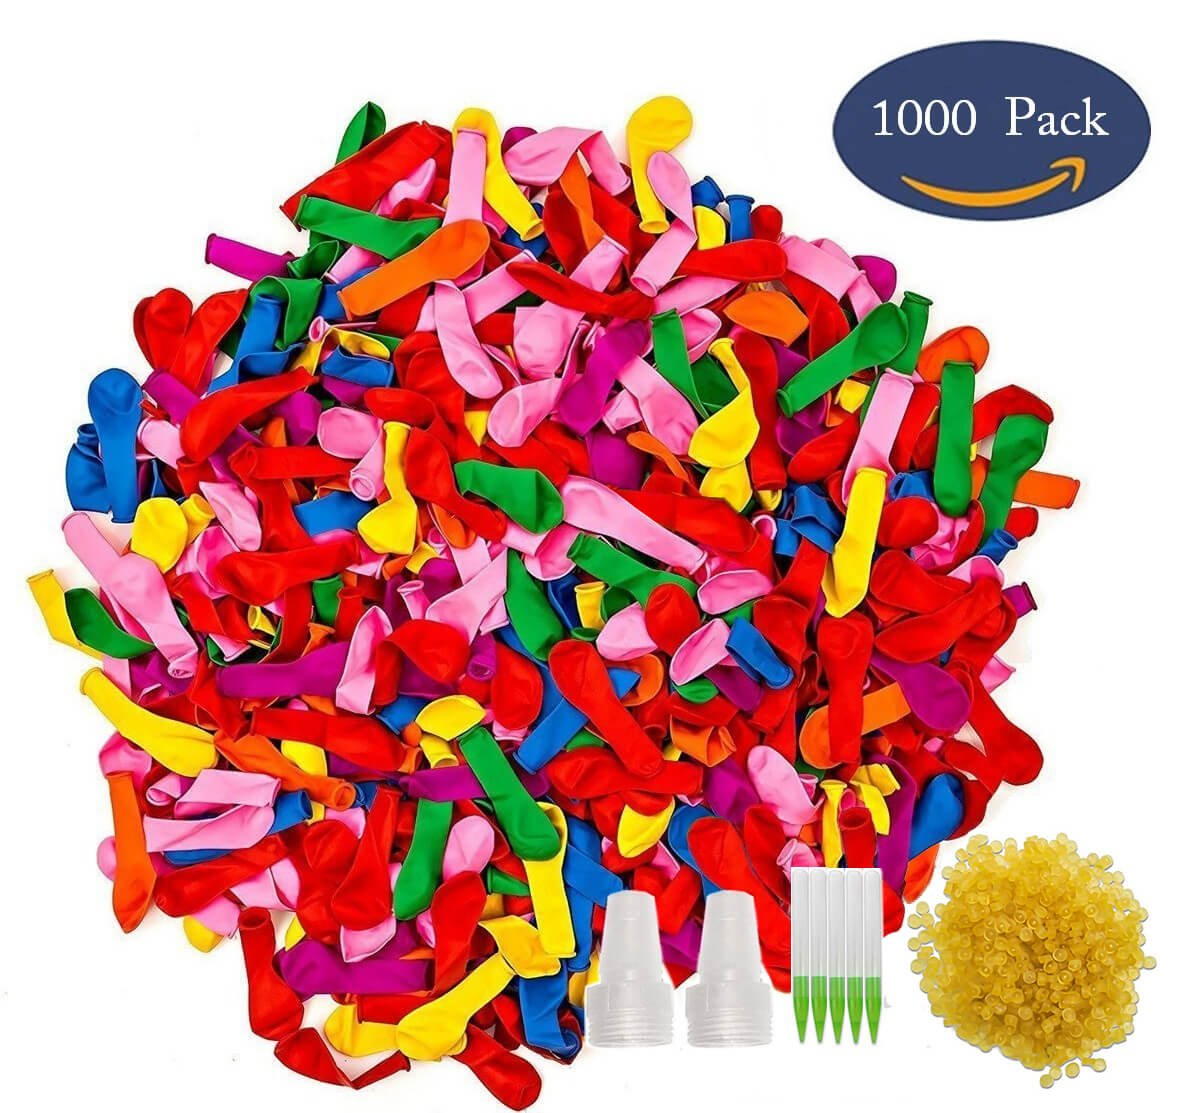 IlikeEC Water Balloon Refill Kit 1000-Pack, Latex Water Bomb Balloons Fight Games, Summer Splash Fun for Kids & Adults